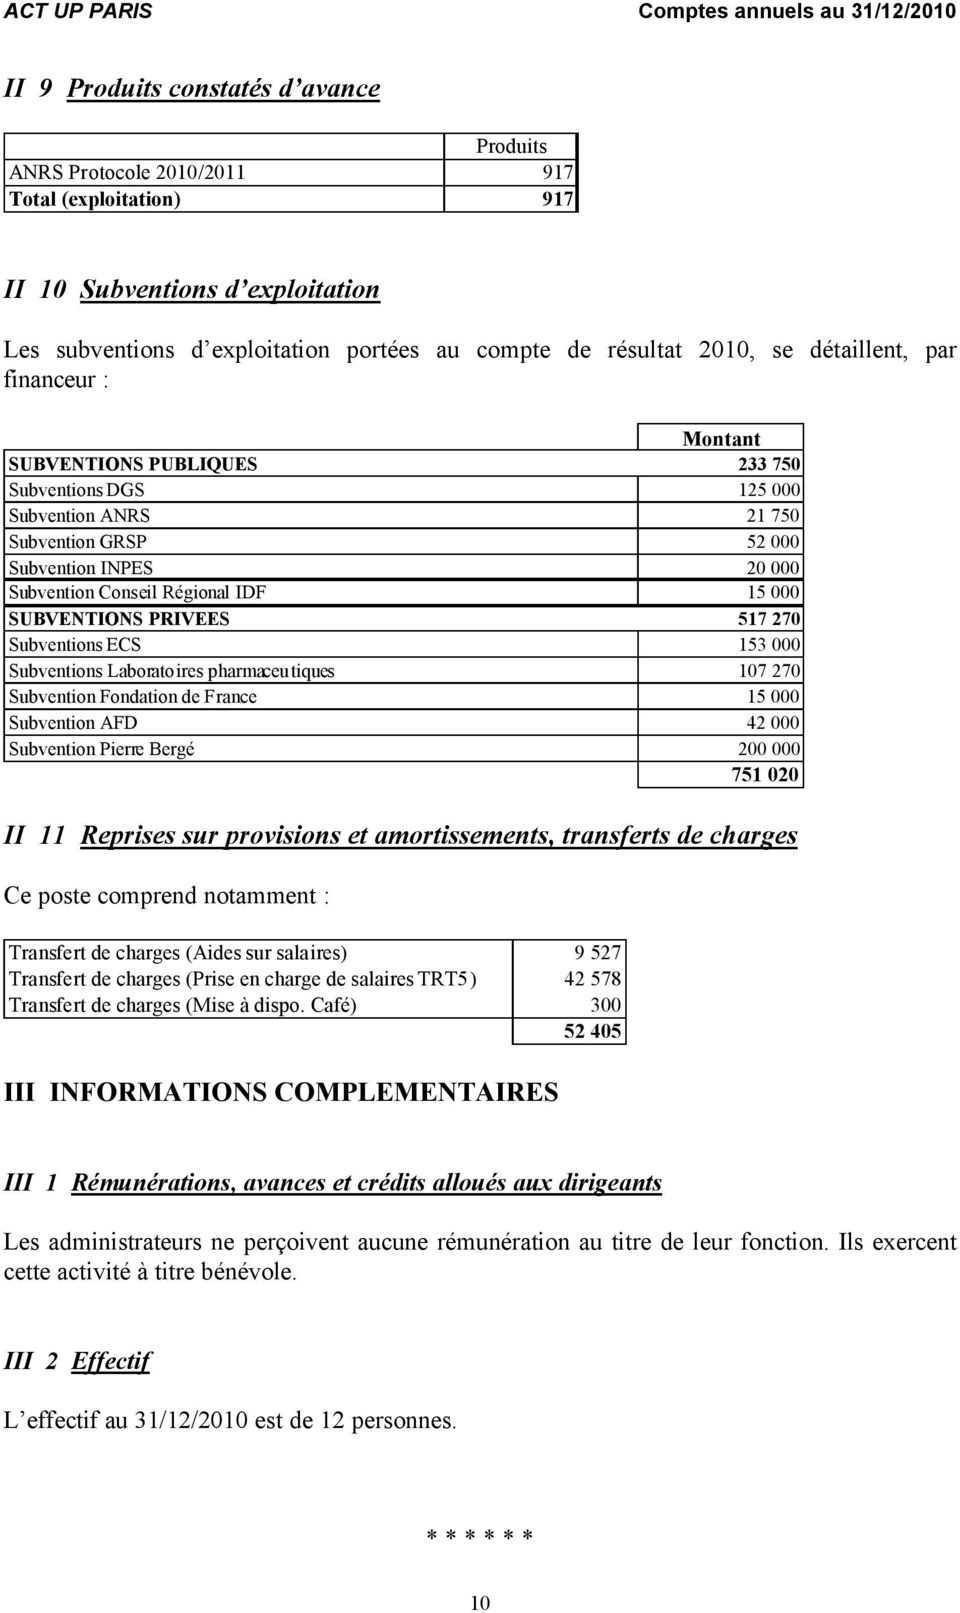 SUBVENTIONS PRIVEES 517 270 Subventions ECS 153 000 Subventions Laboratoires pharmaceutiques 107 270 Subvention Fondation de France 15 000 Subvention AFD 42 000 Subvention Pierre Bergé 200 000 751